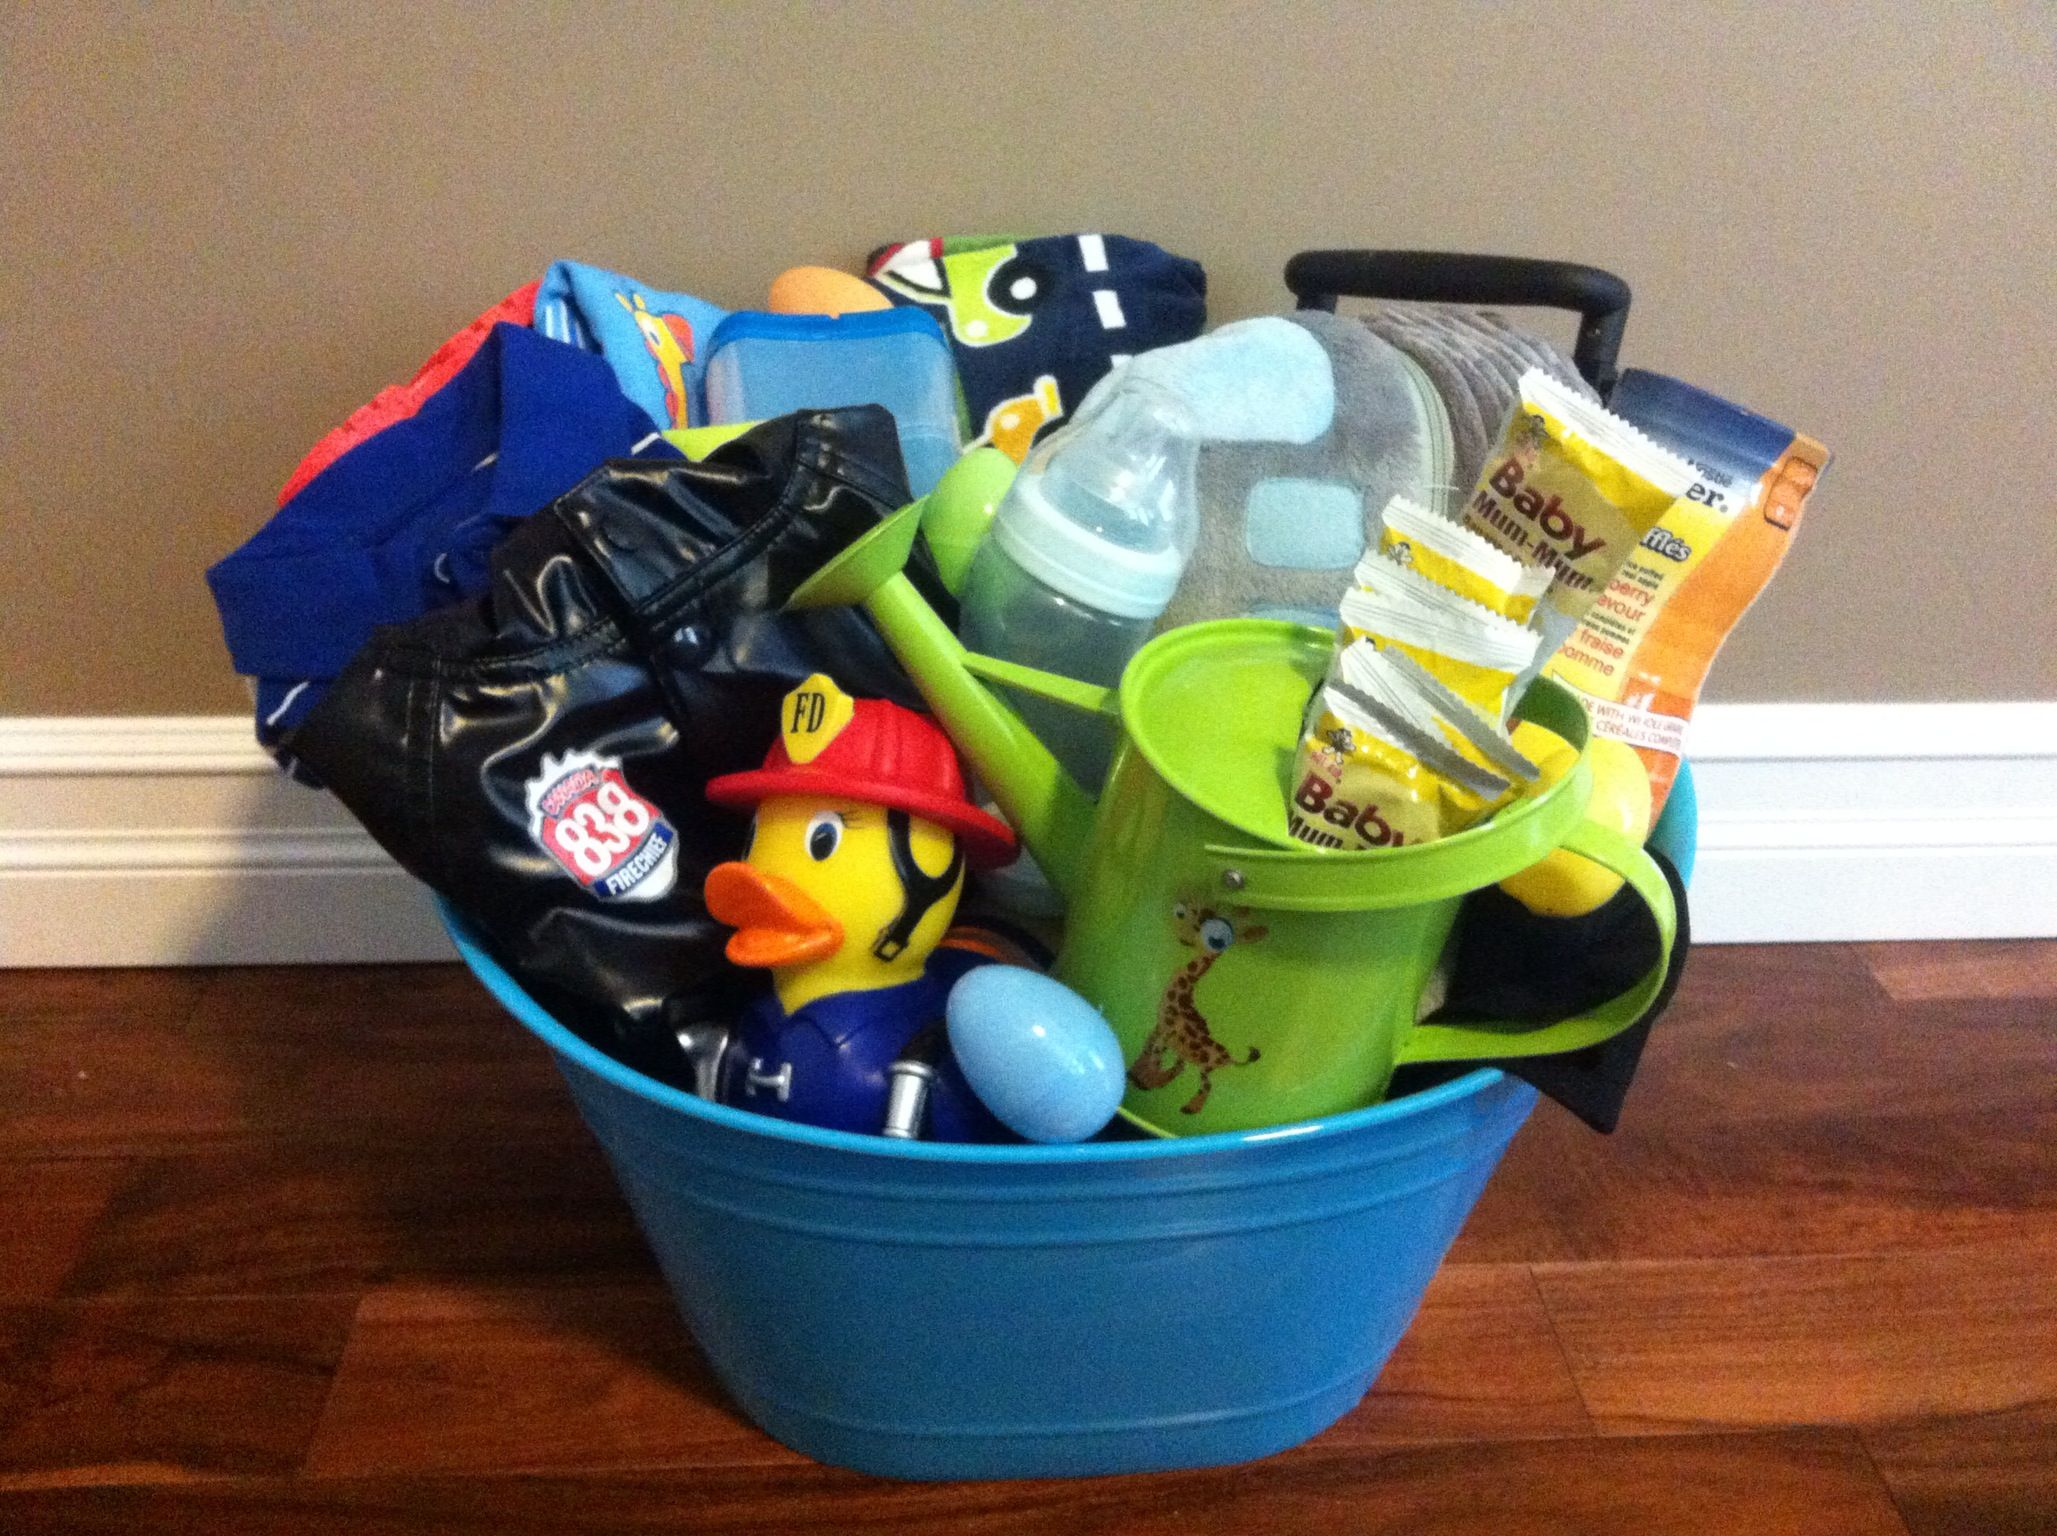 Easter ideas part 3 of 3 real deep stuff - Easter Basket For My 9 Month Old Son Basket Is Filled With The Following